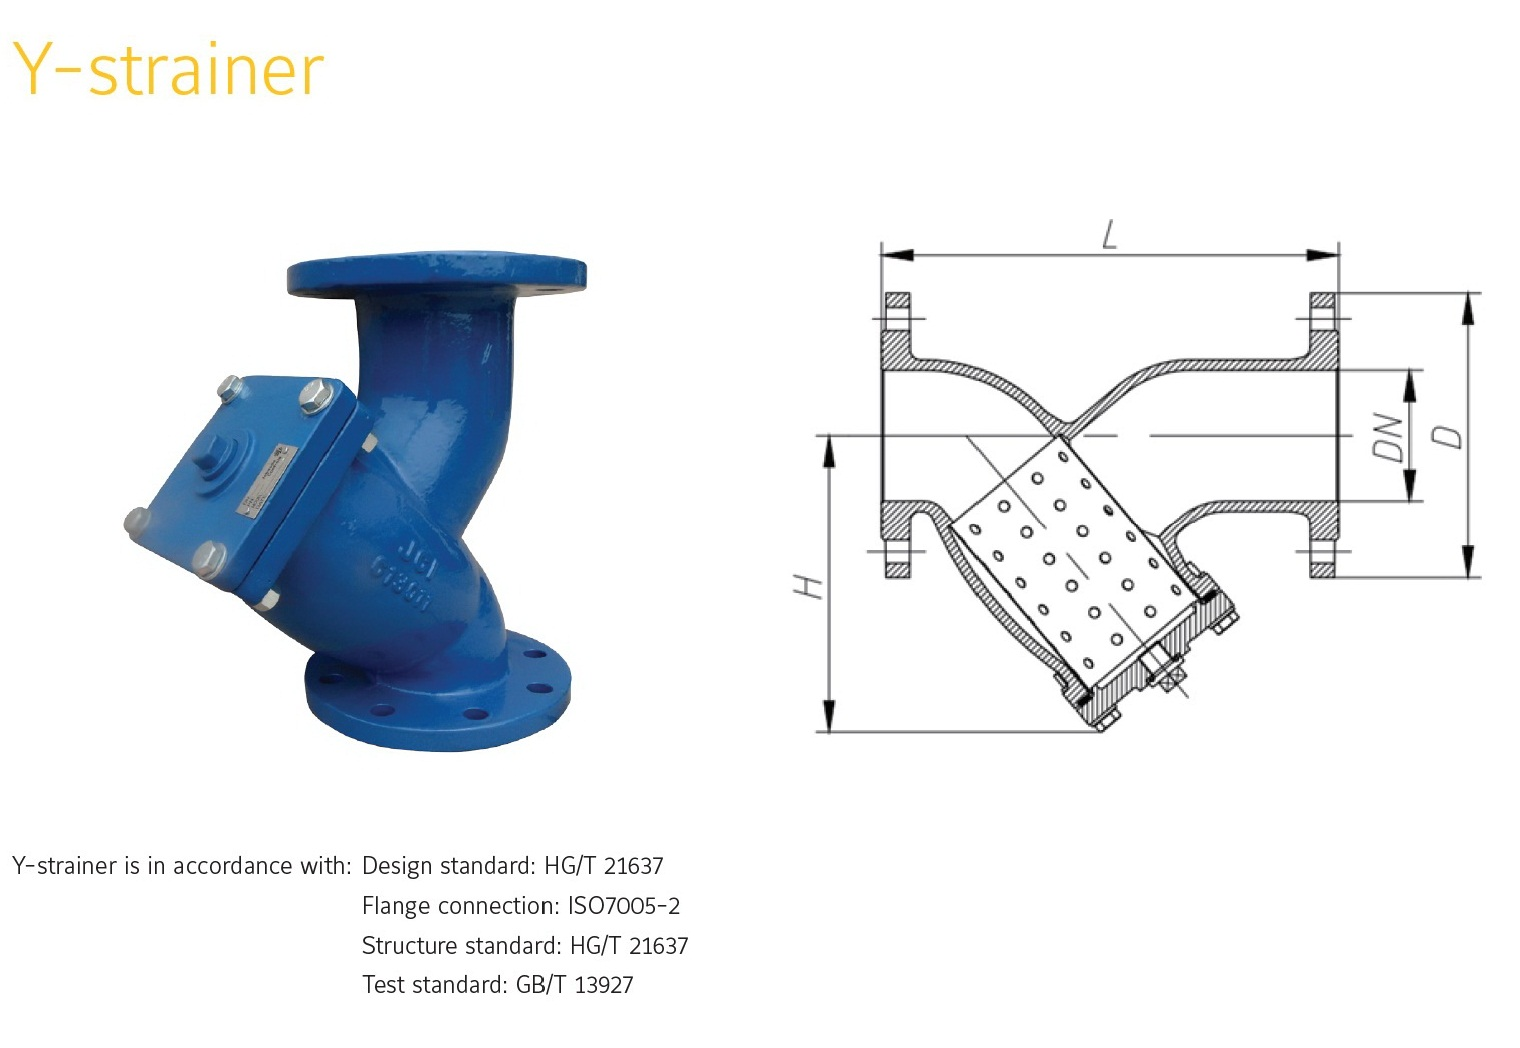 y-strainer